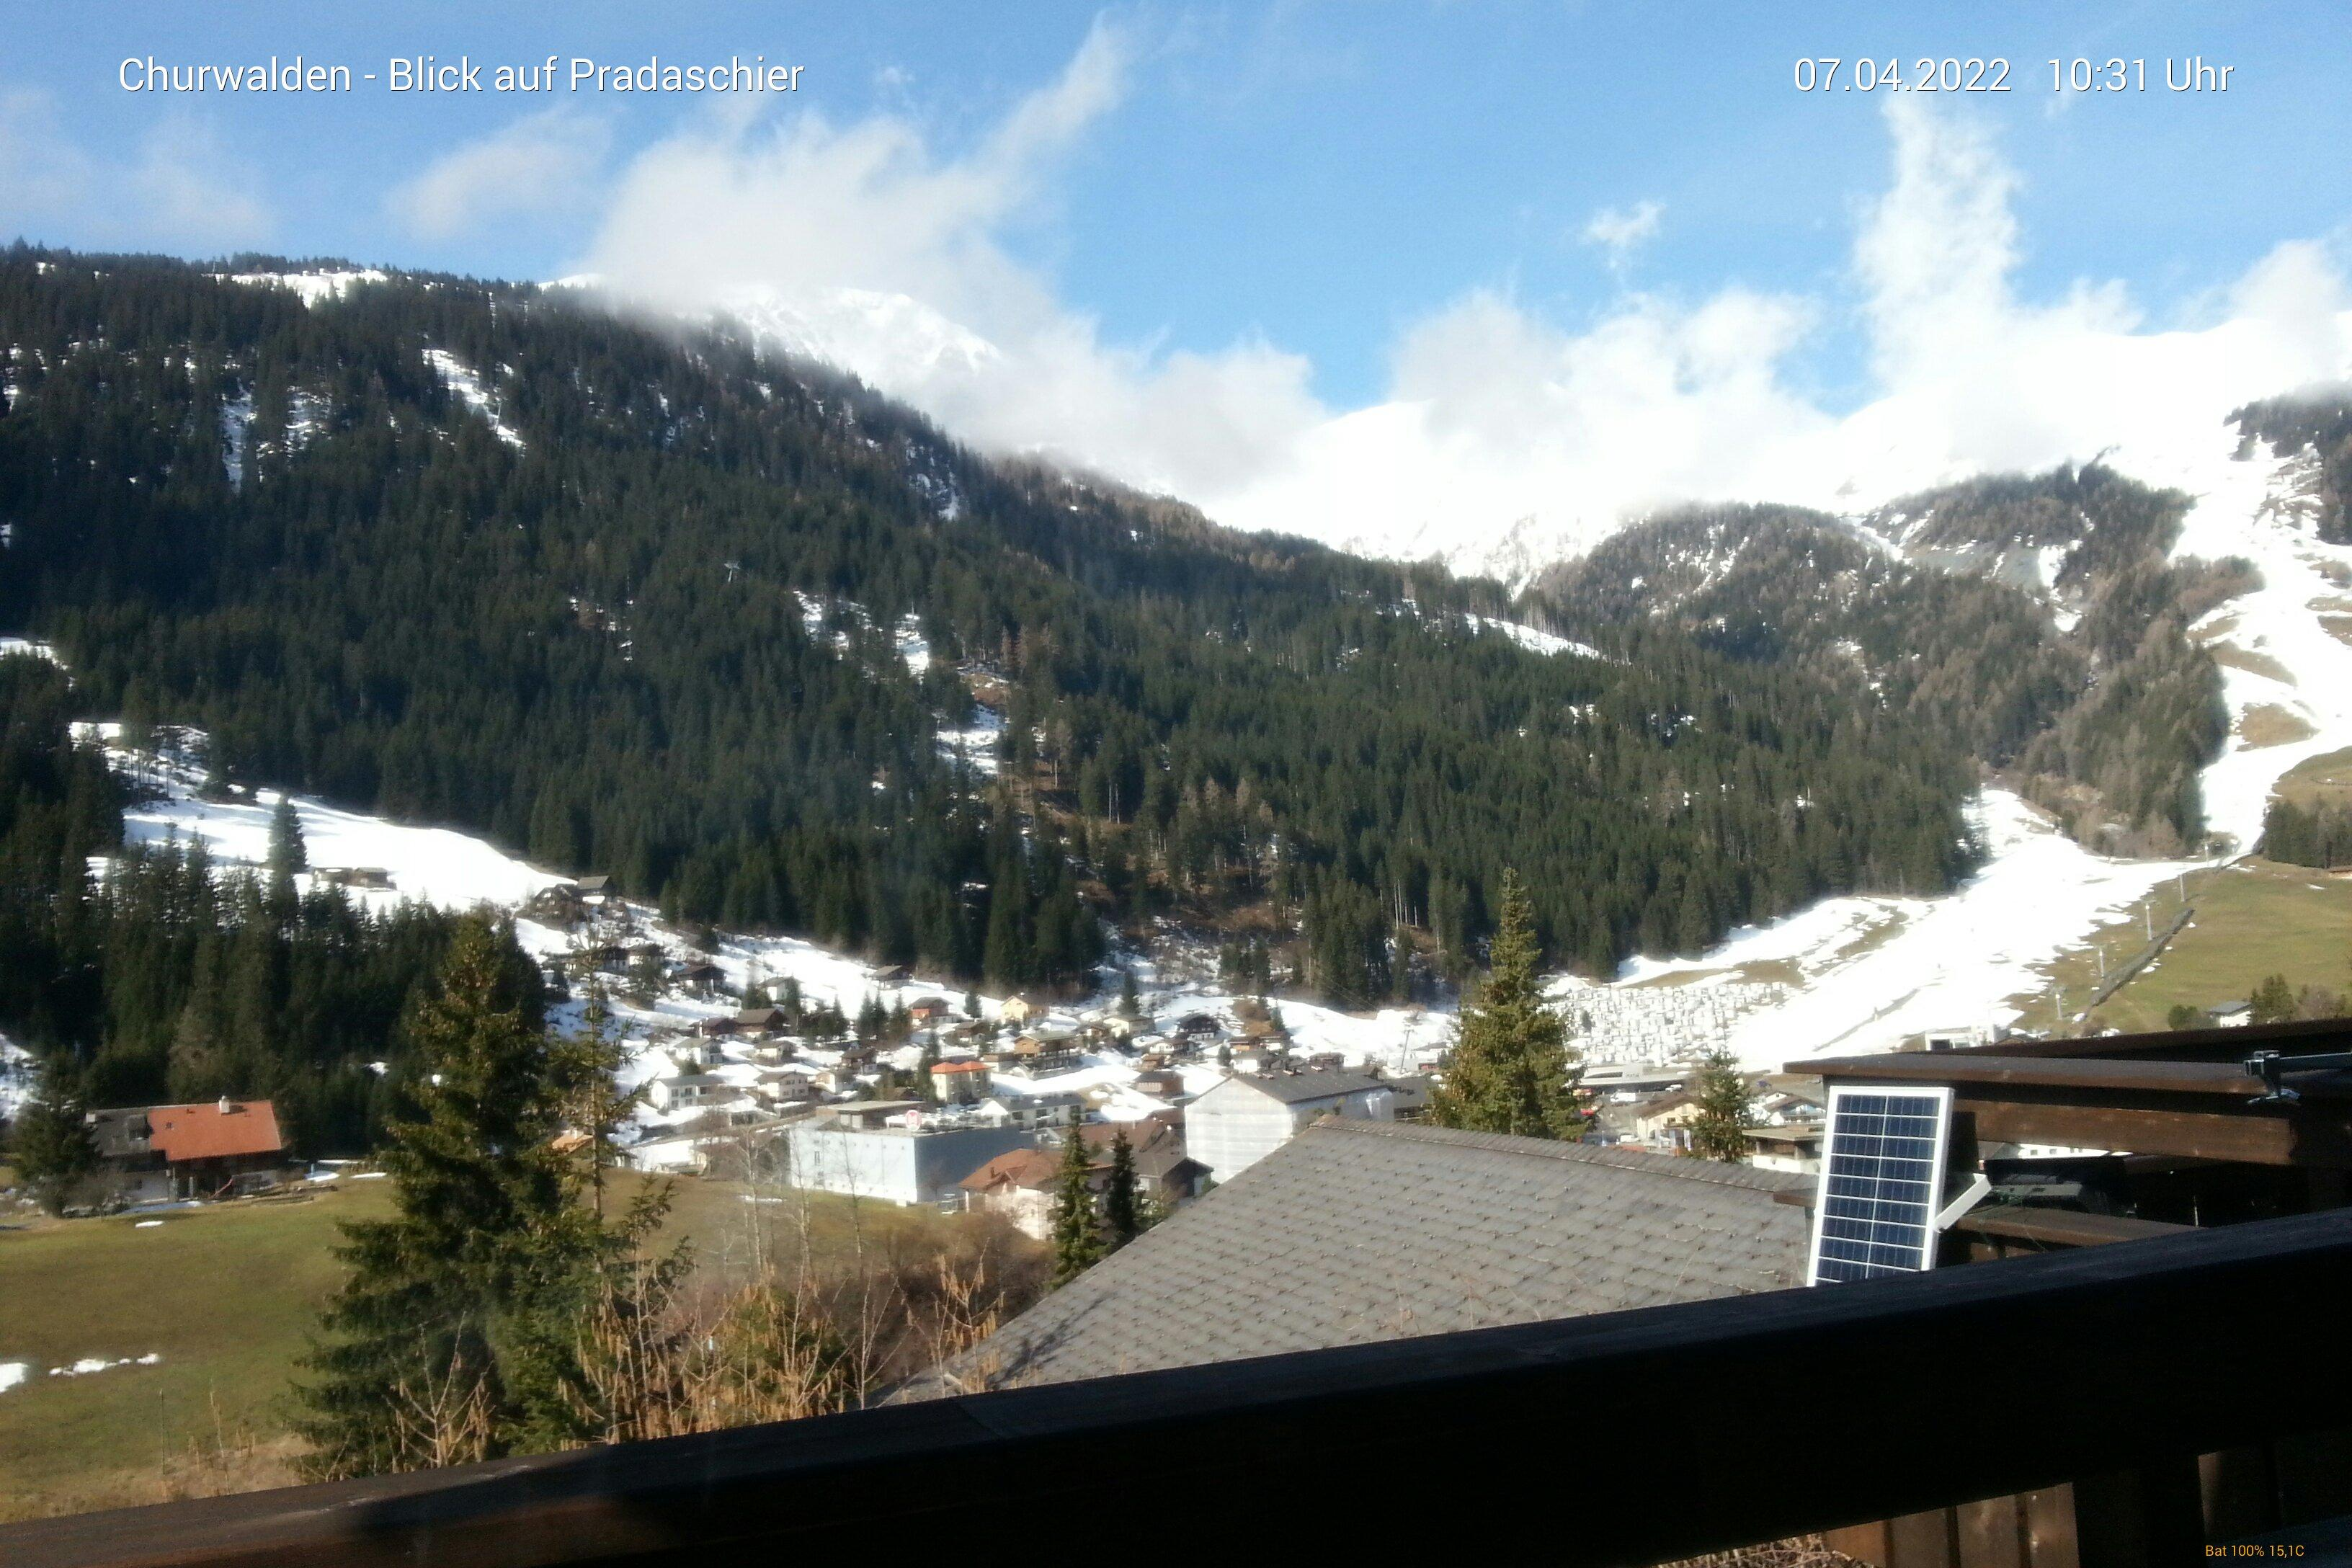 Webcam Churwalden (Graubünden)